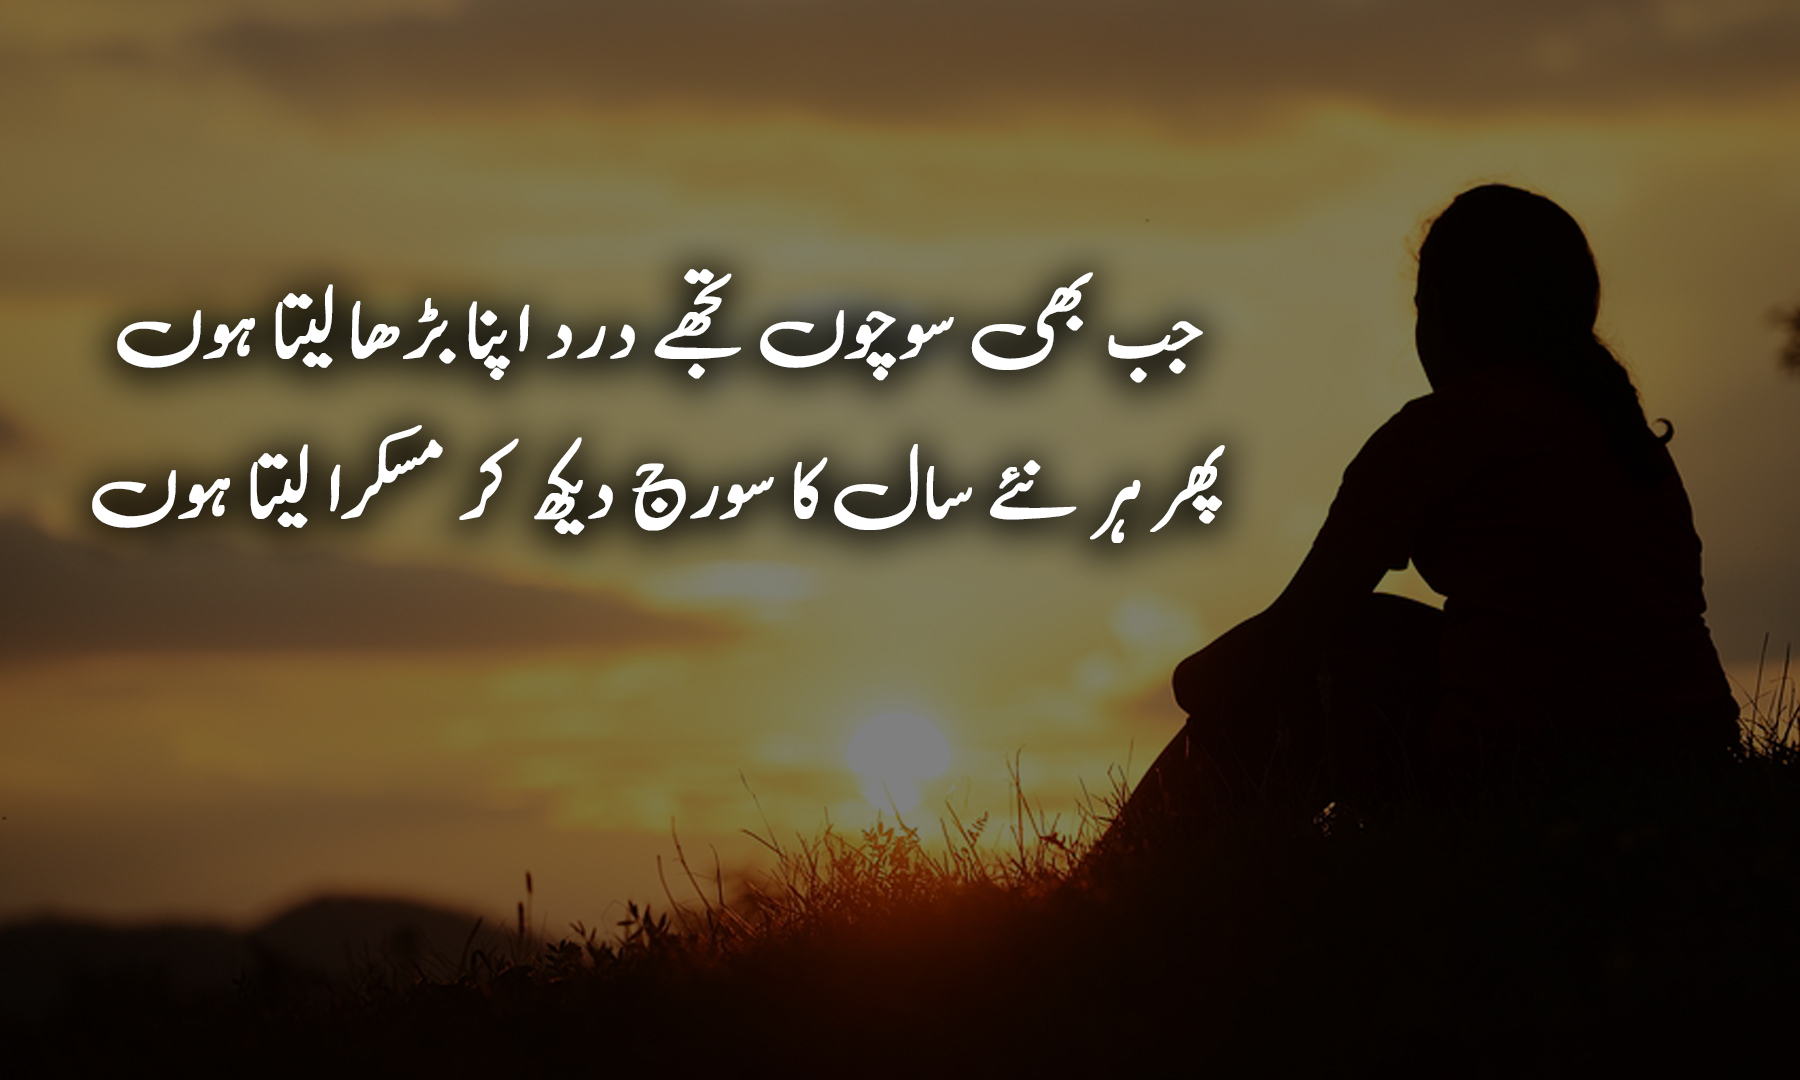 Poetry Images Find Latest Photos Pictures Collection